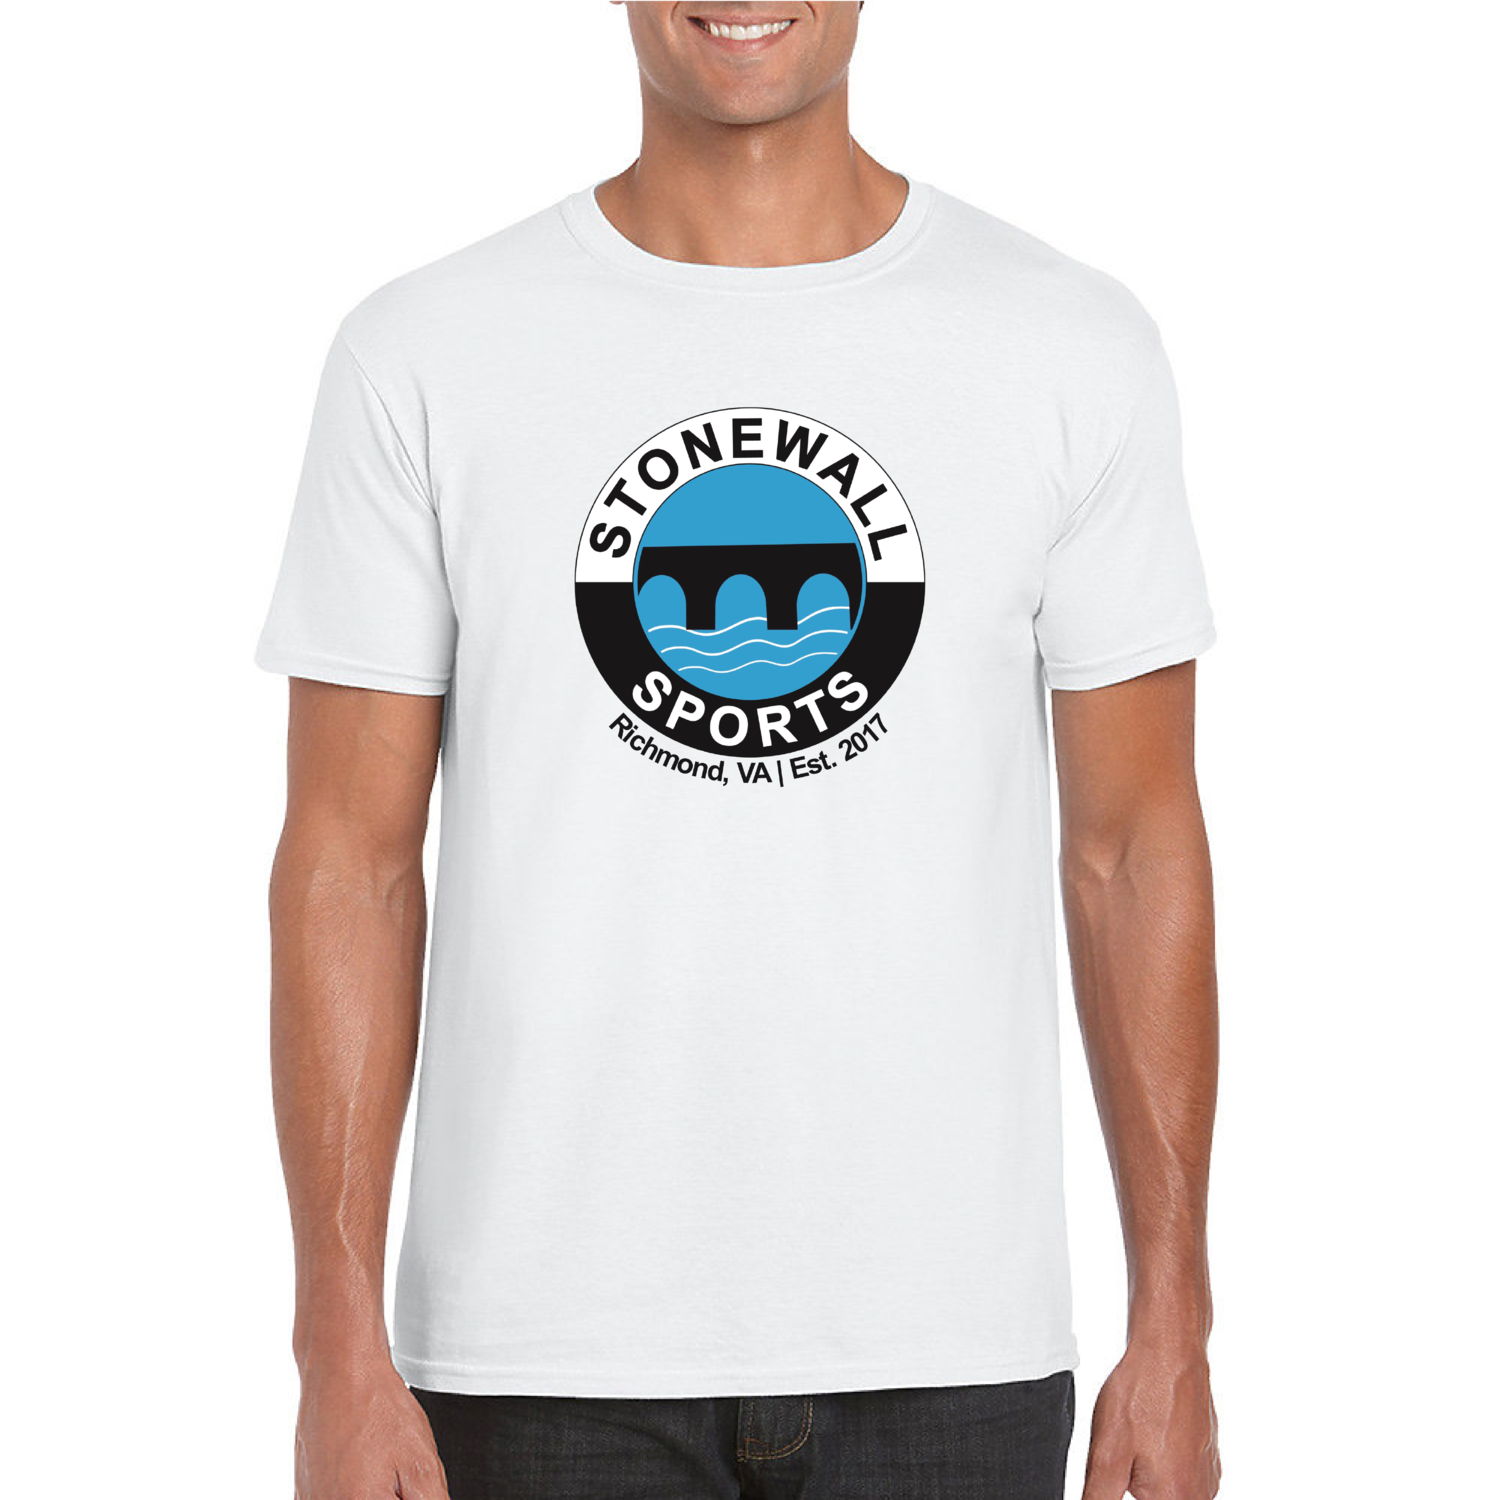 Stonewall Sports Unisex Tshirt - More Colors Available!